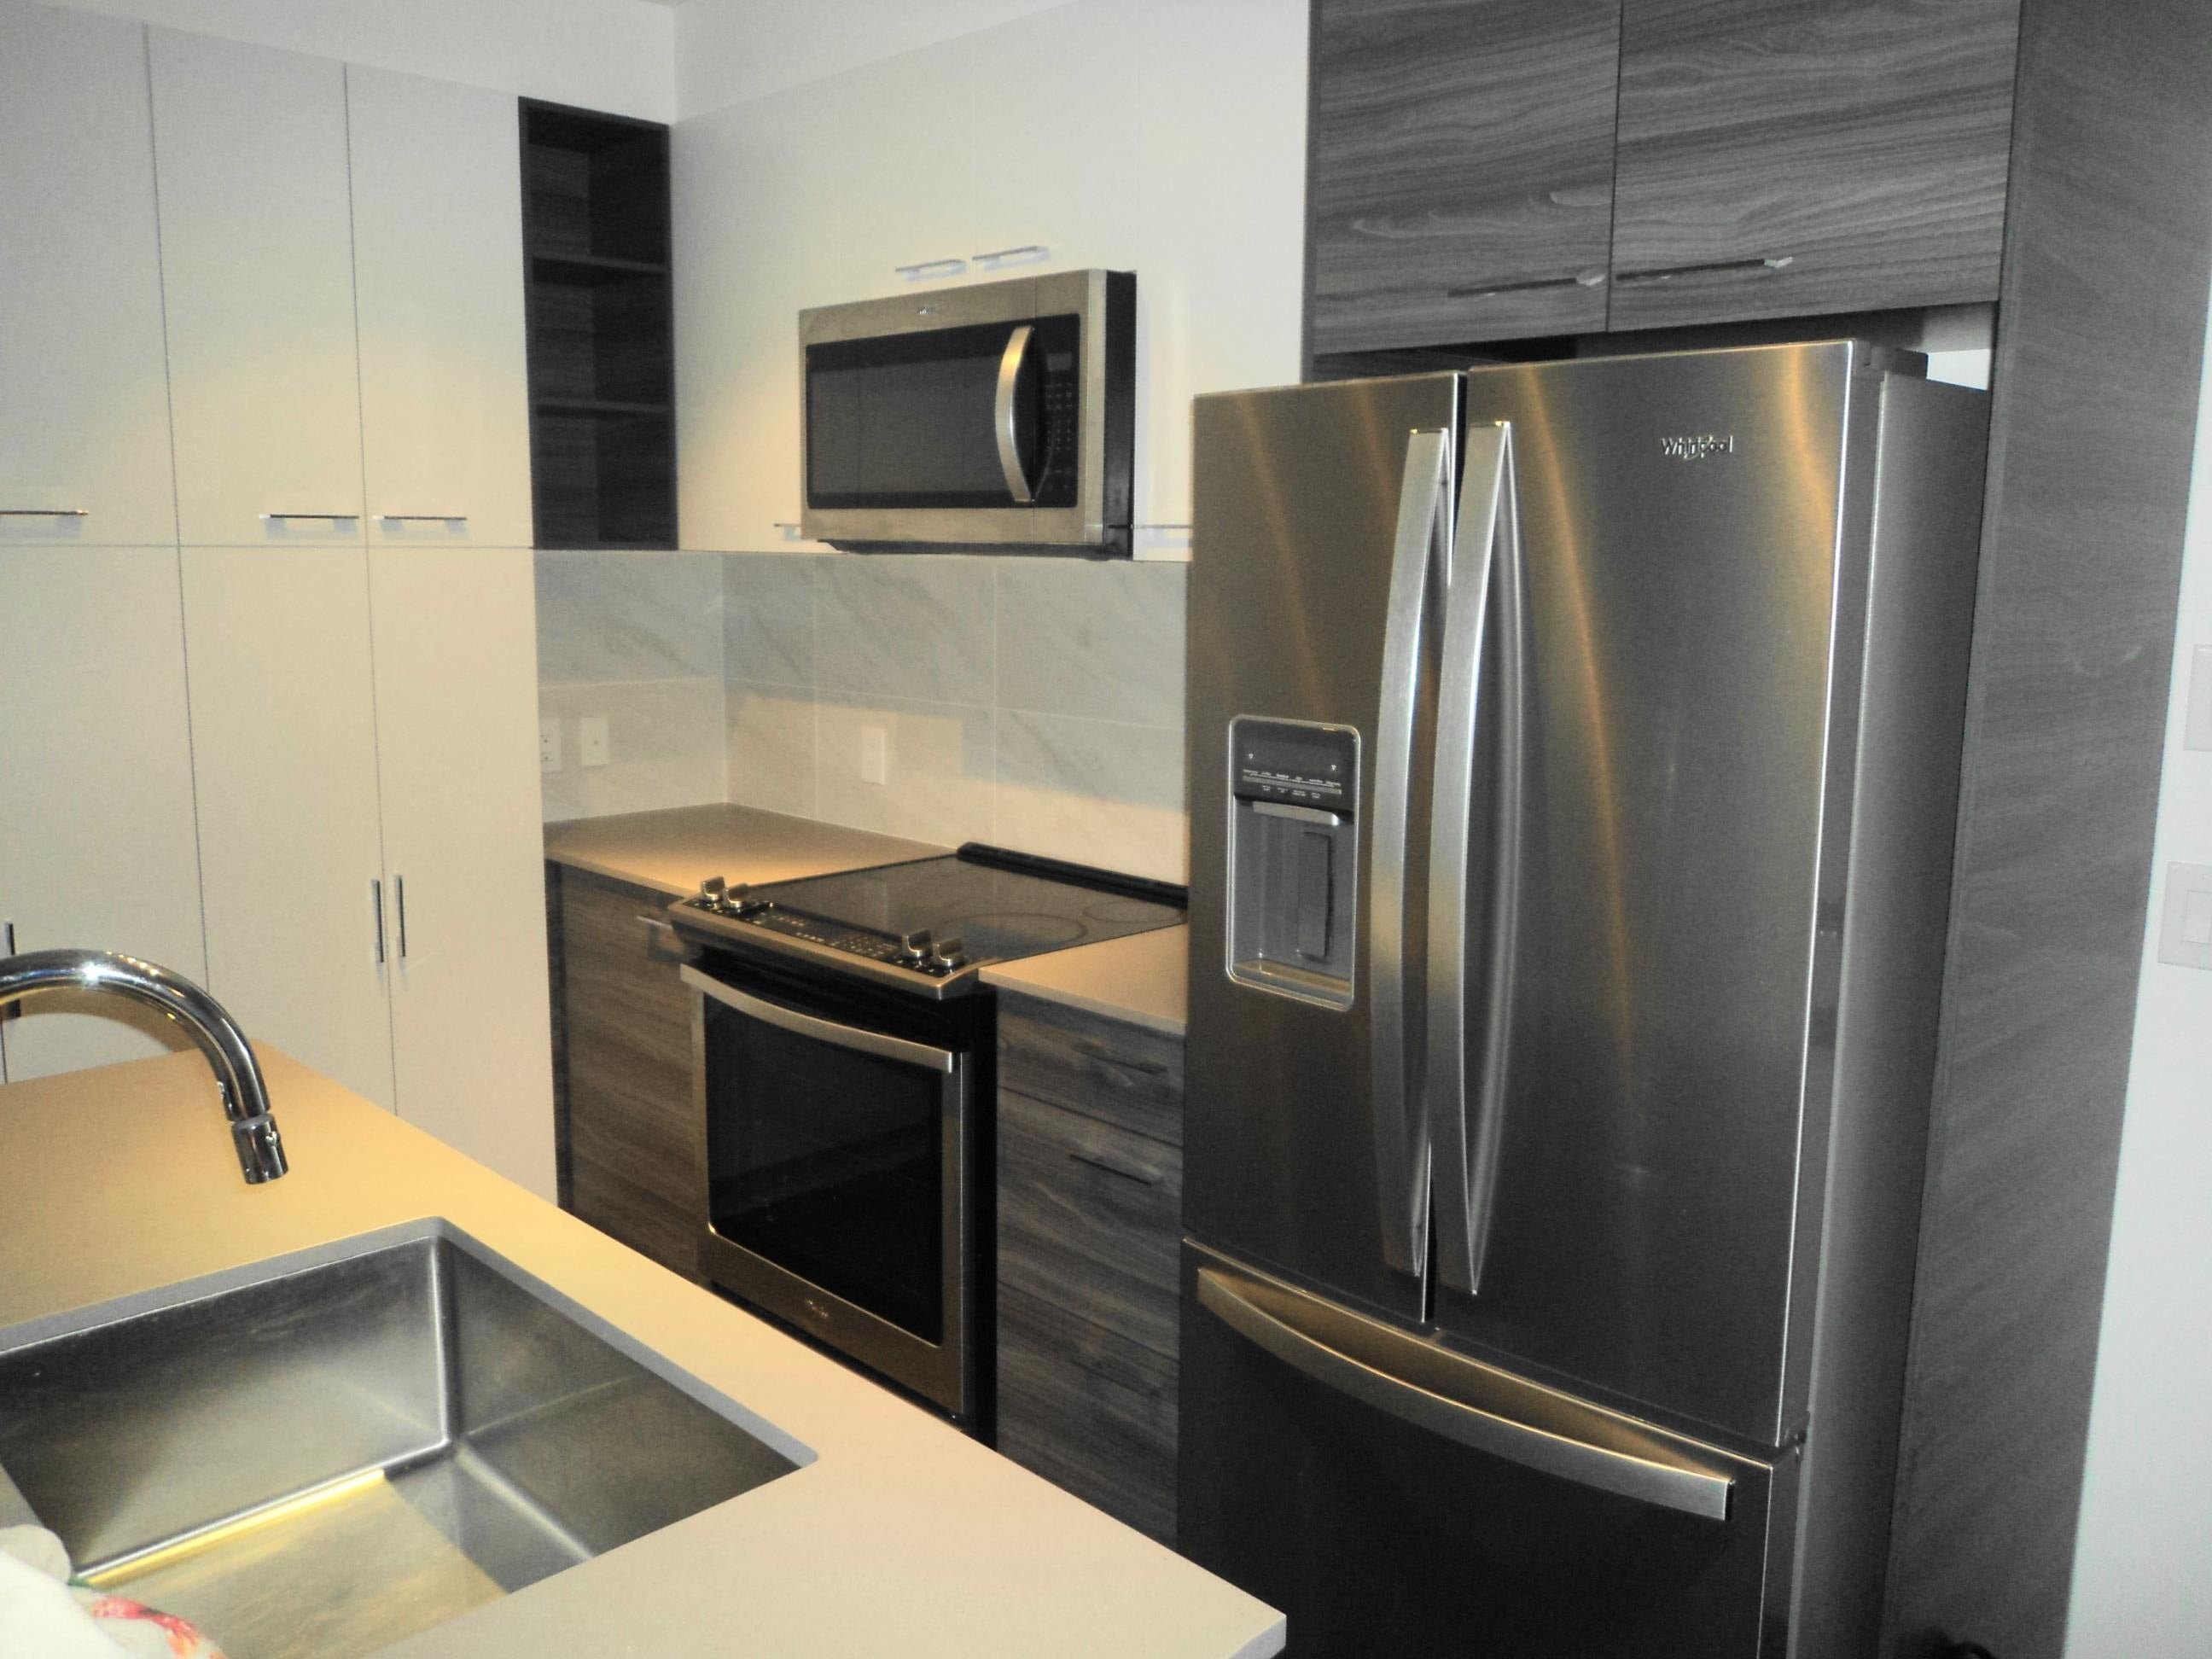 207 10581 140 STREET - Whalley Apartment/Condo for sale, 2 Bedrooms (R2615061) - #8